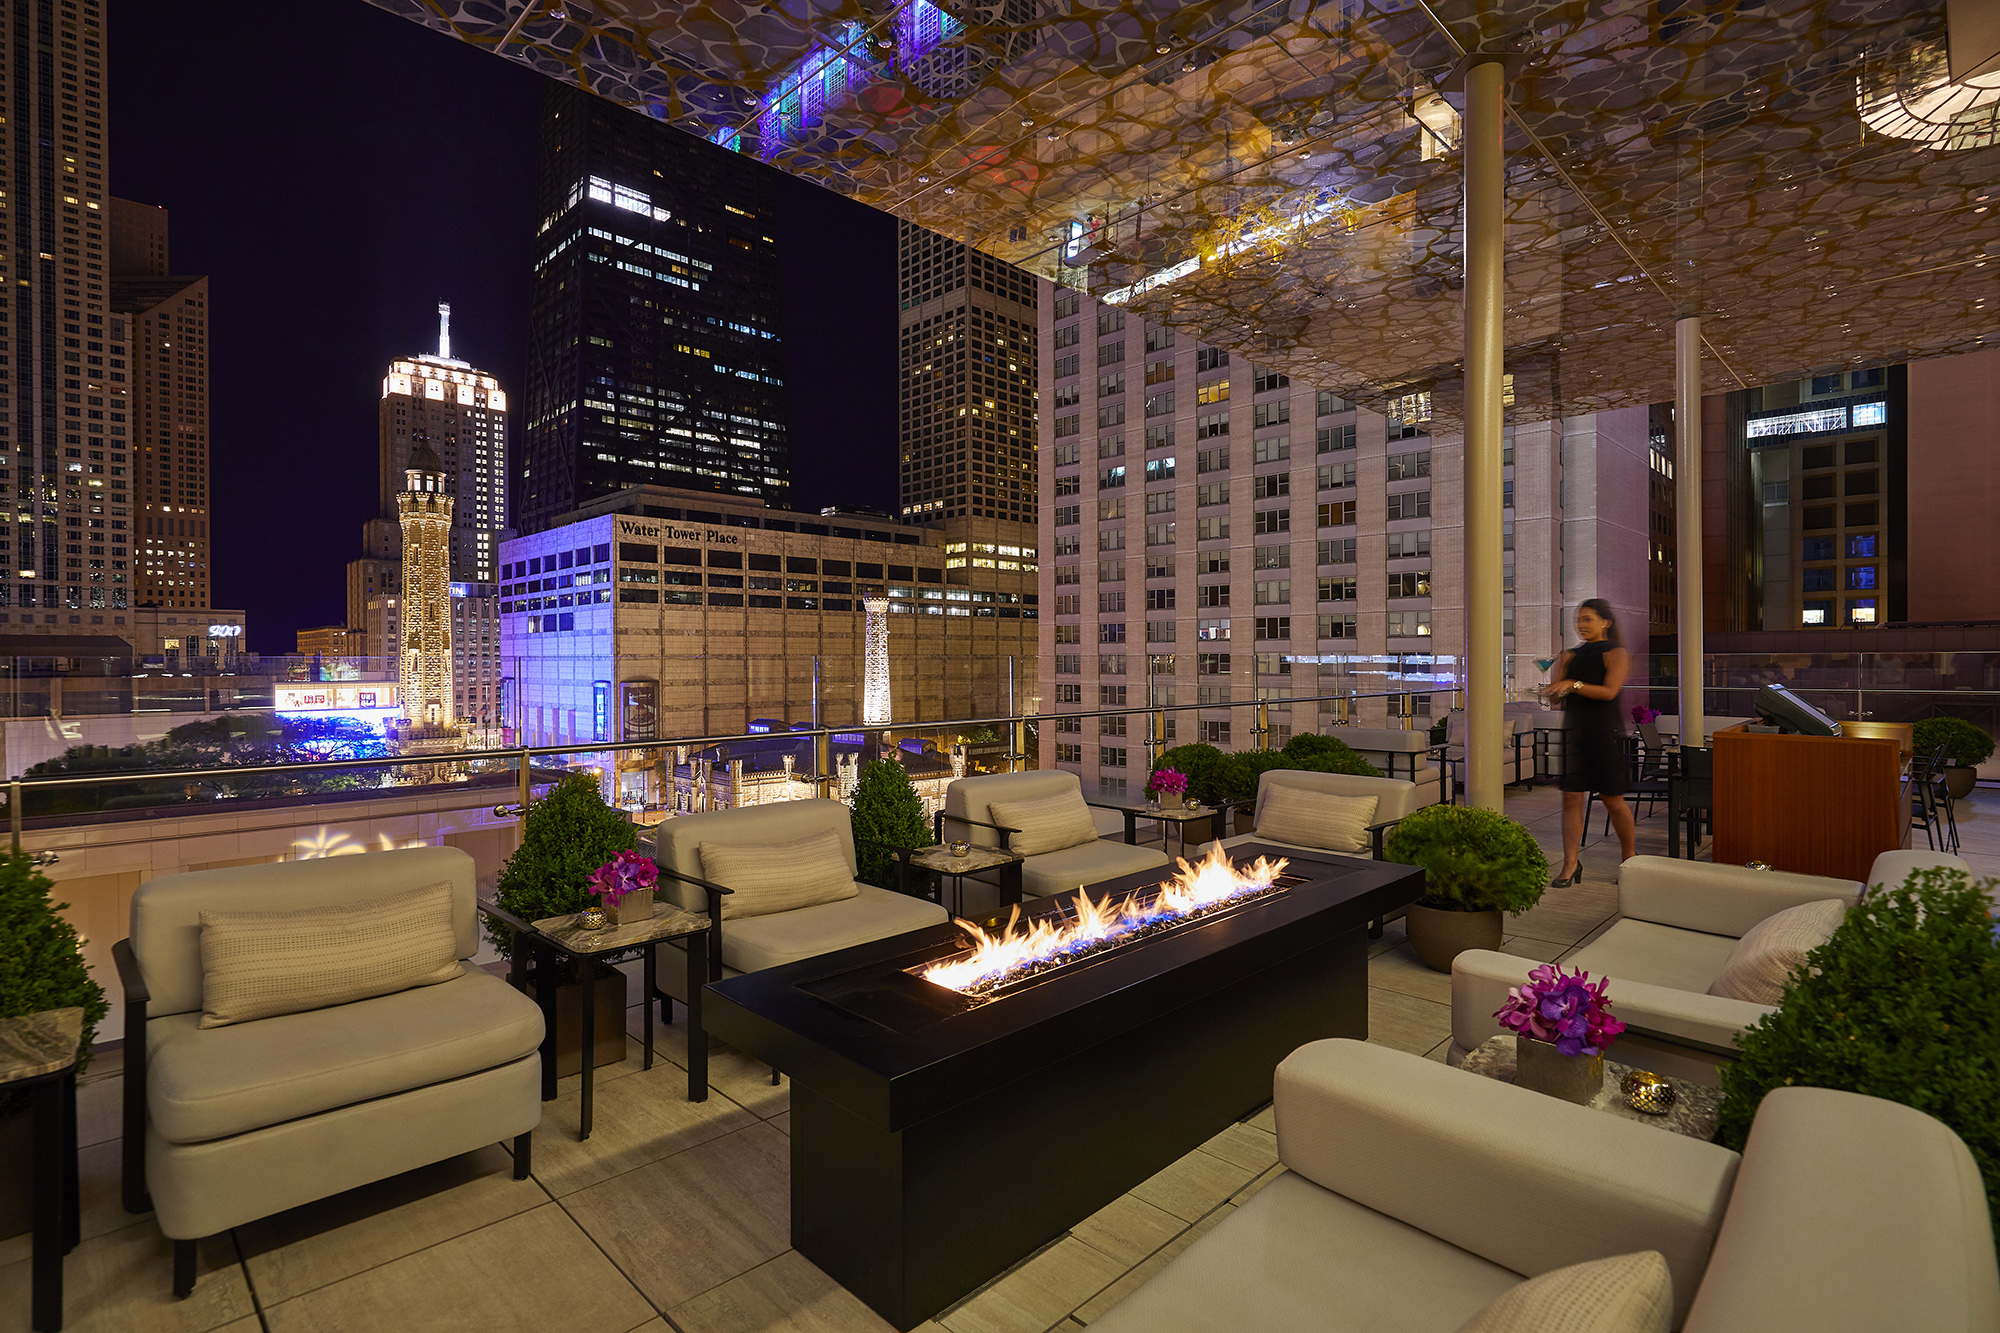 Miracle Mile views, 24-carat cocktails, and Chicago-style pizza pockets are served atop the Peninsula Hotel.